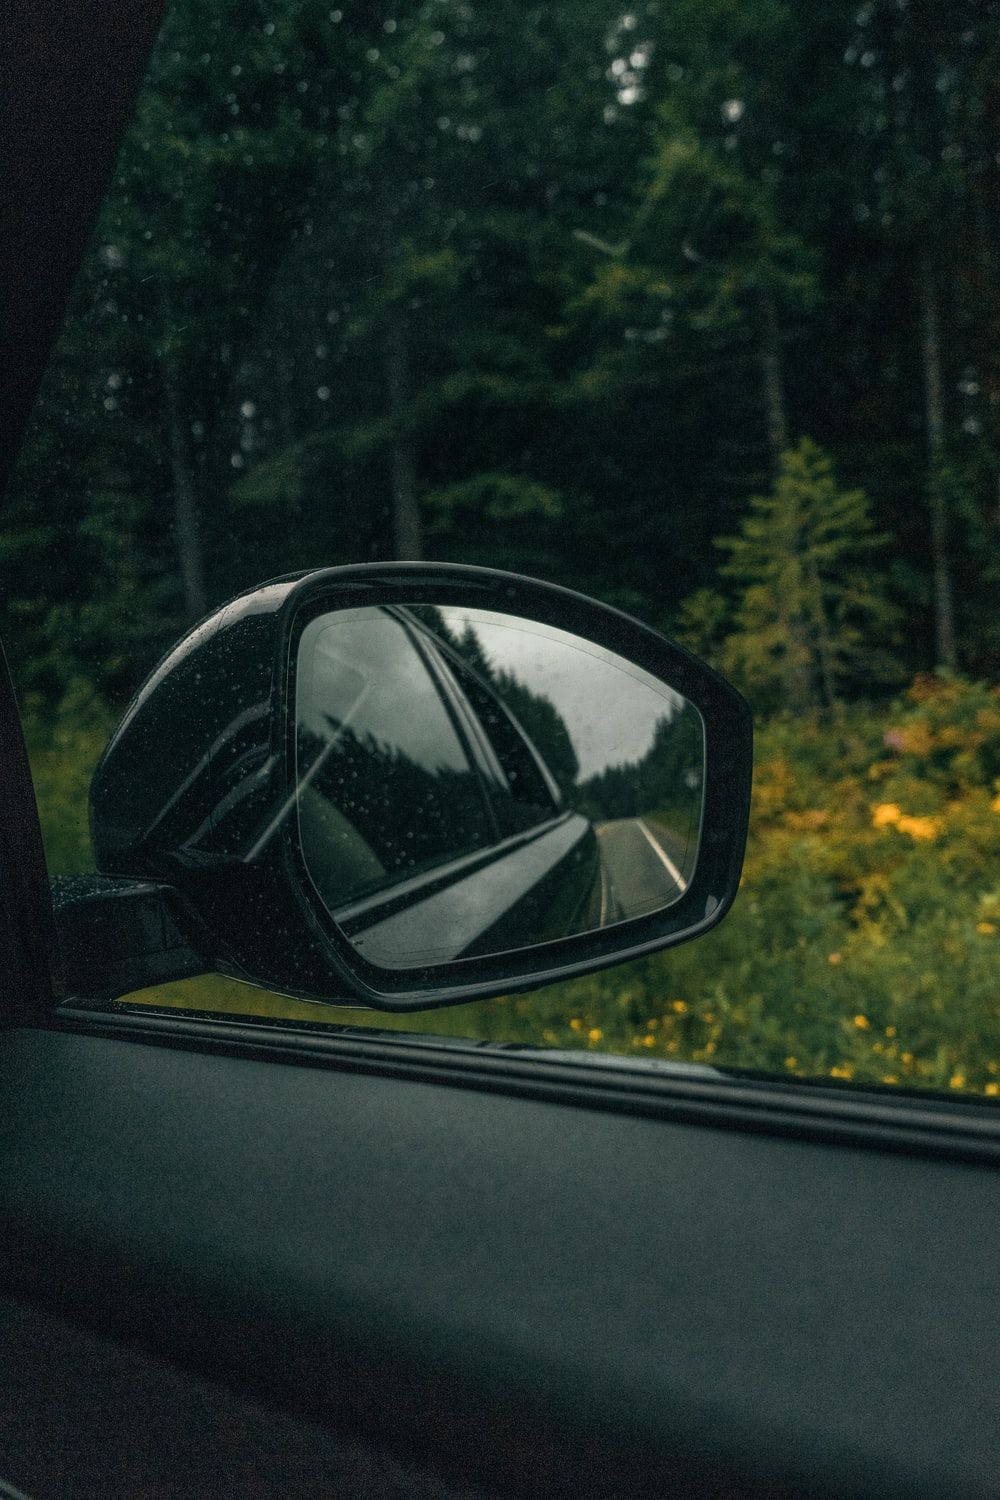 car side mirror reflecting green trees during daytime